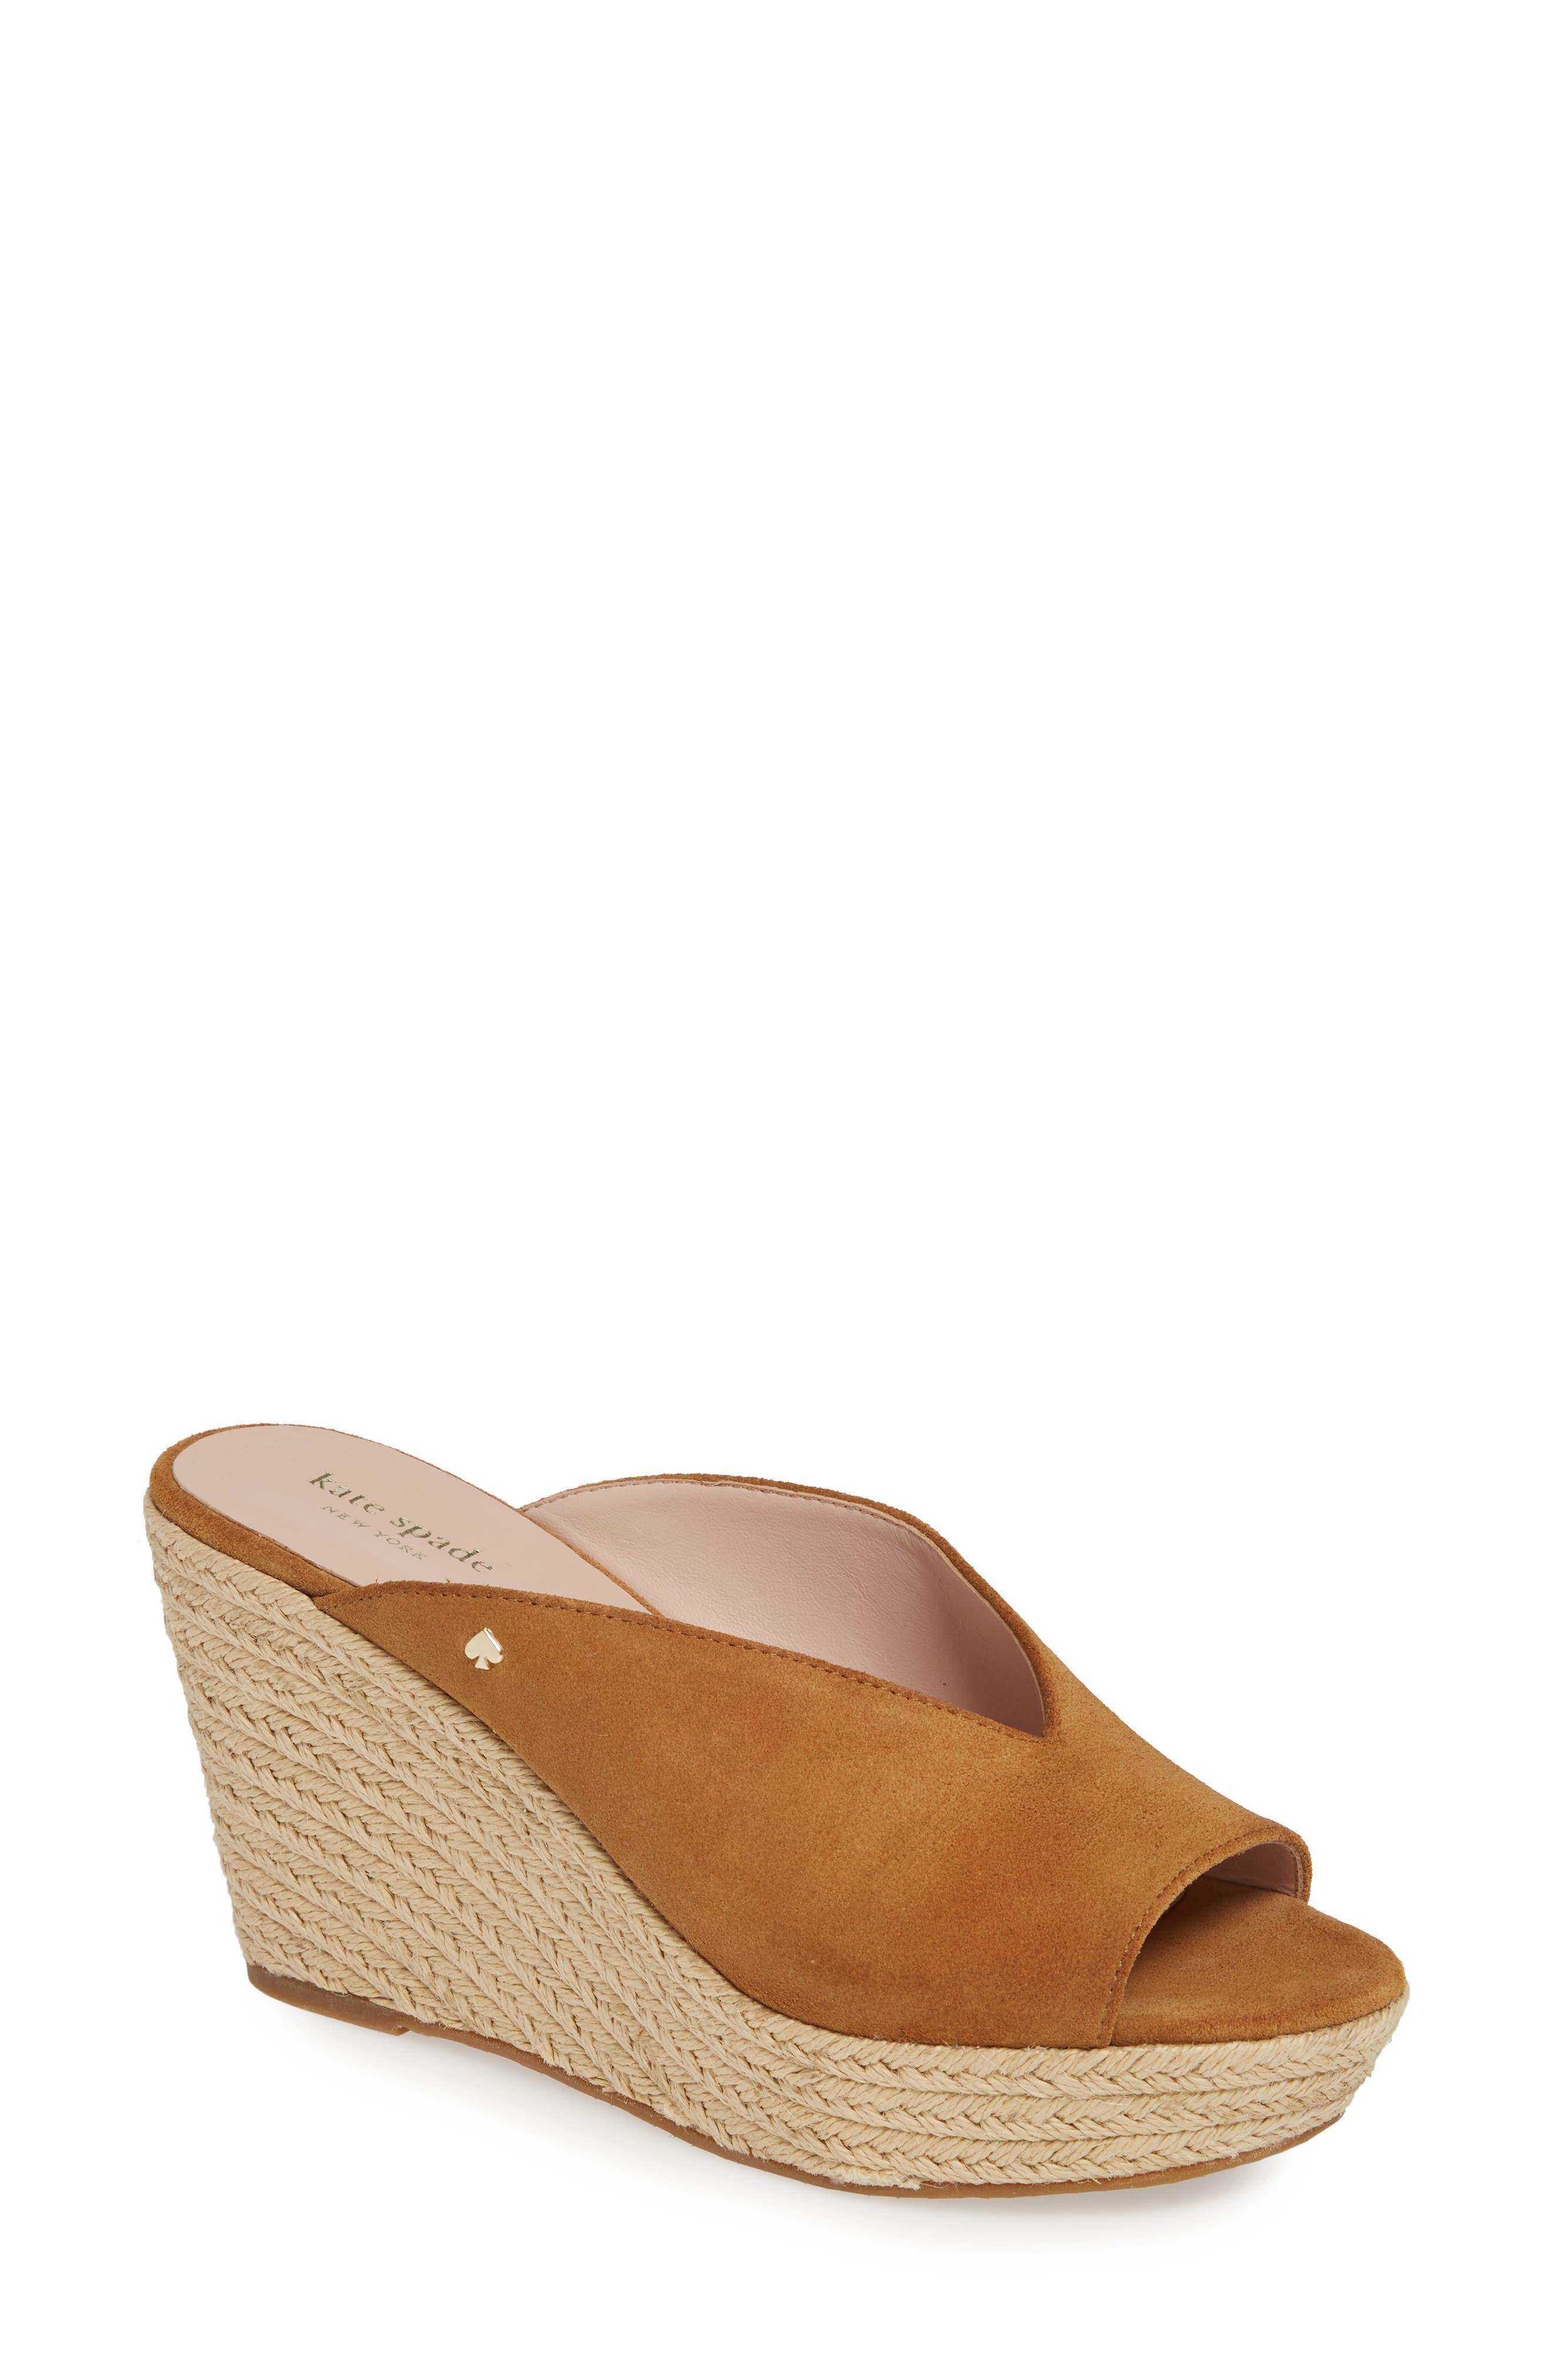 KATE SPADE NEW YORK, thea wedge espadrille mule, Main thumbnail 1, color, TOAST